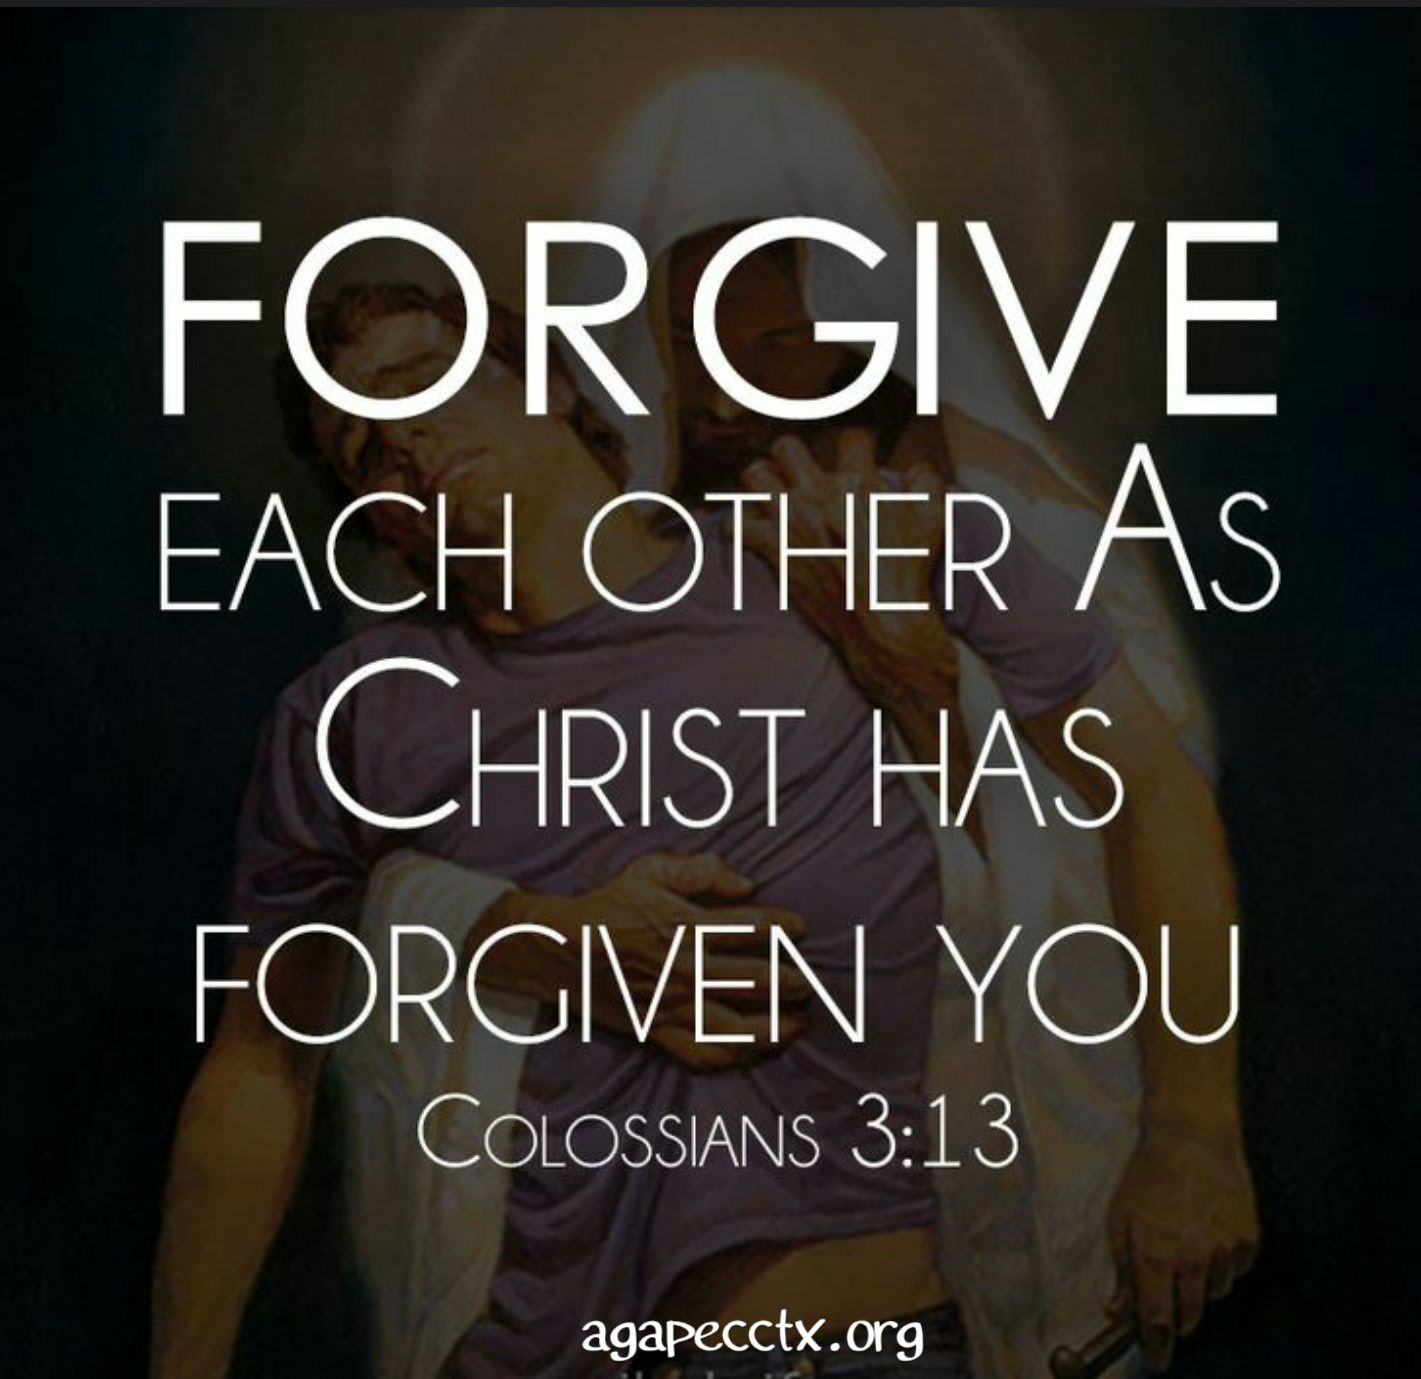 Biblical Quotes About Love Forgiveness  Christian Quotes  Pinterest  Forgiveness Bible